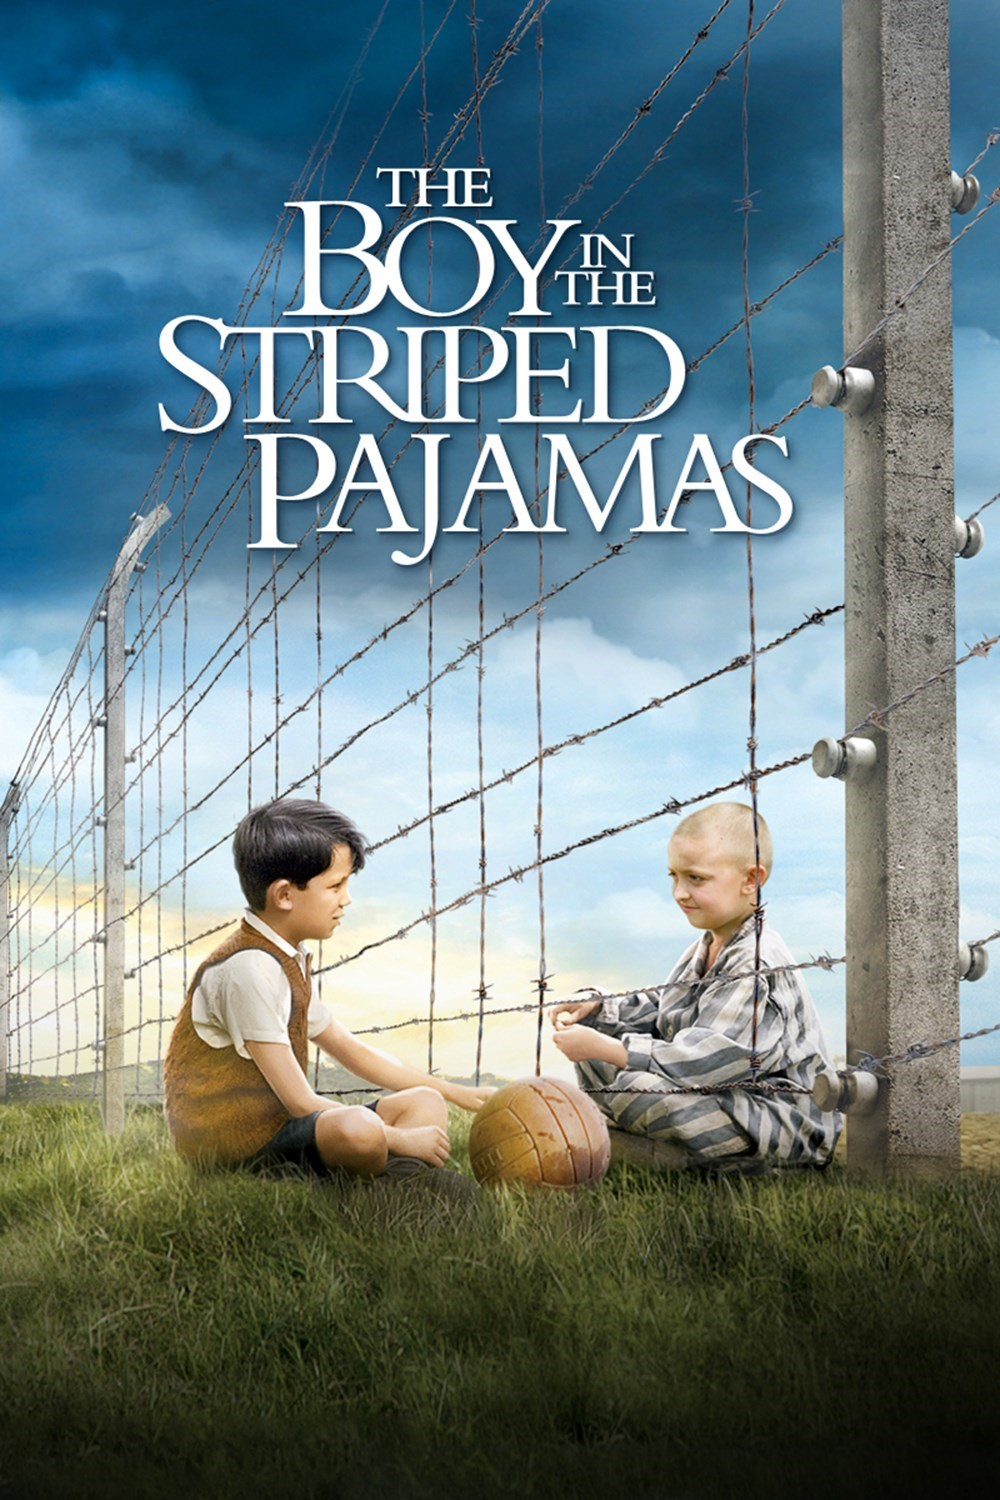 the-boy-in-the-striped-pyjamas-selection-films-tristes-pleurer-2016